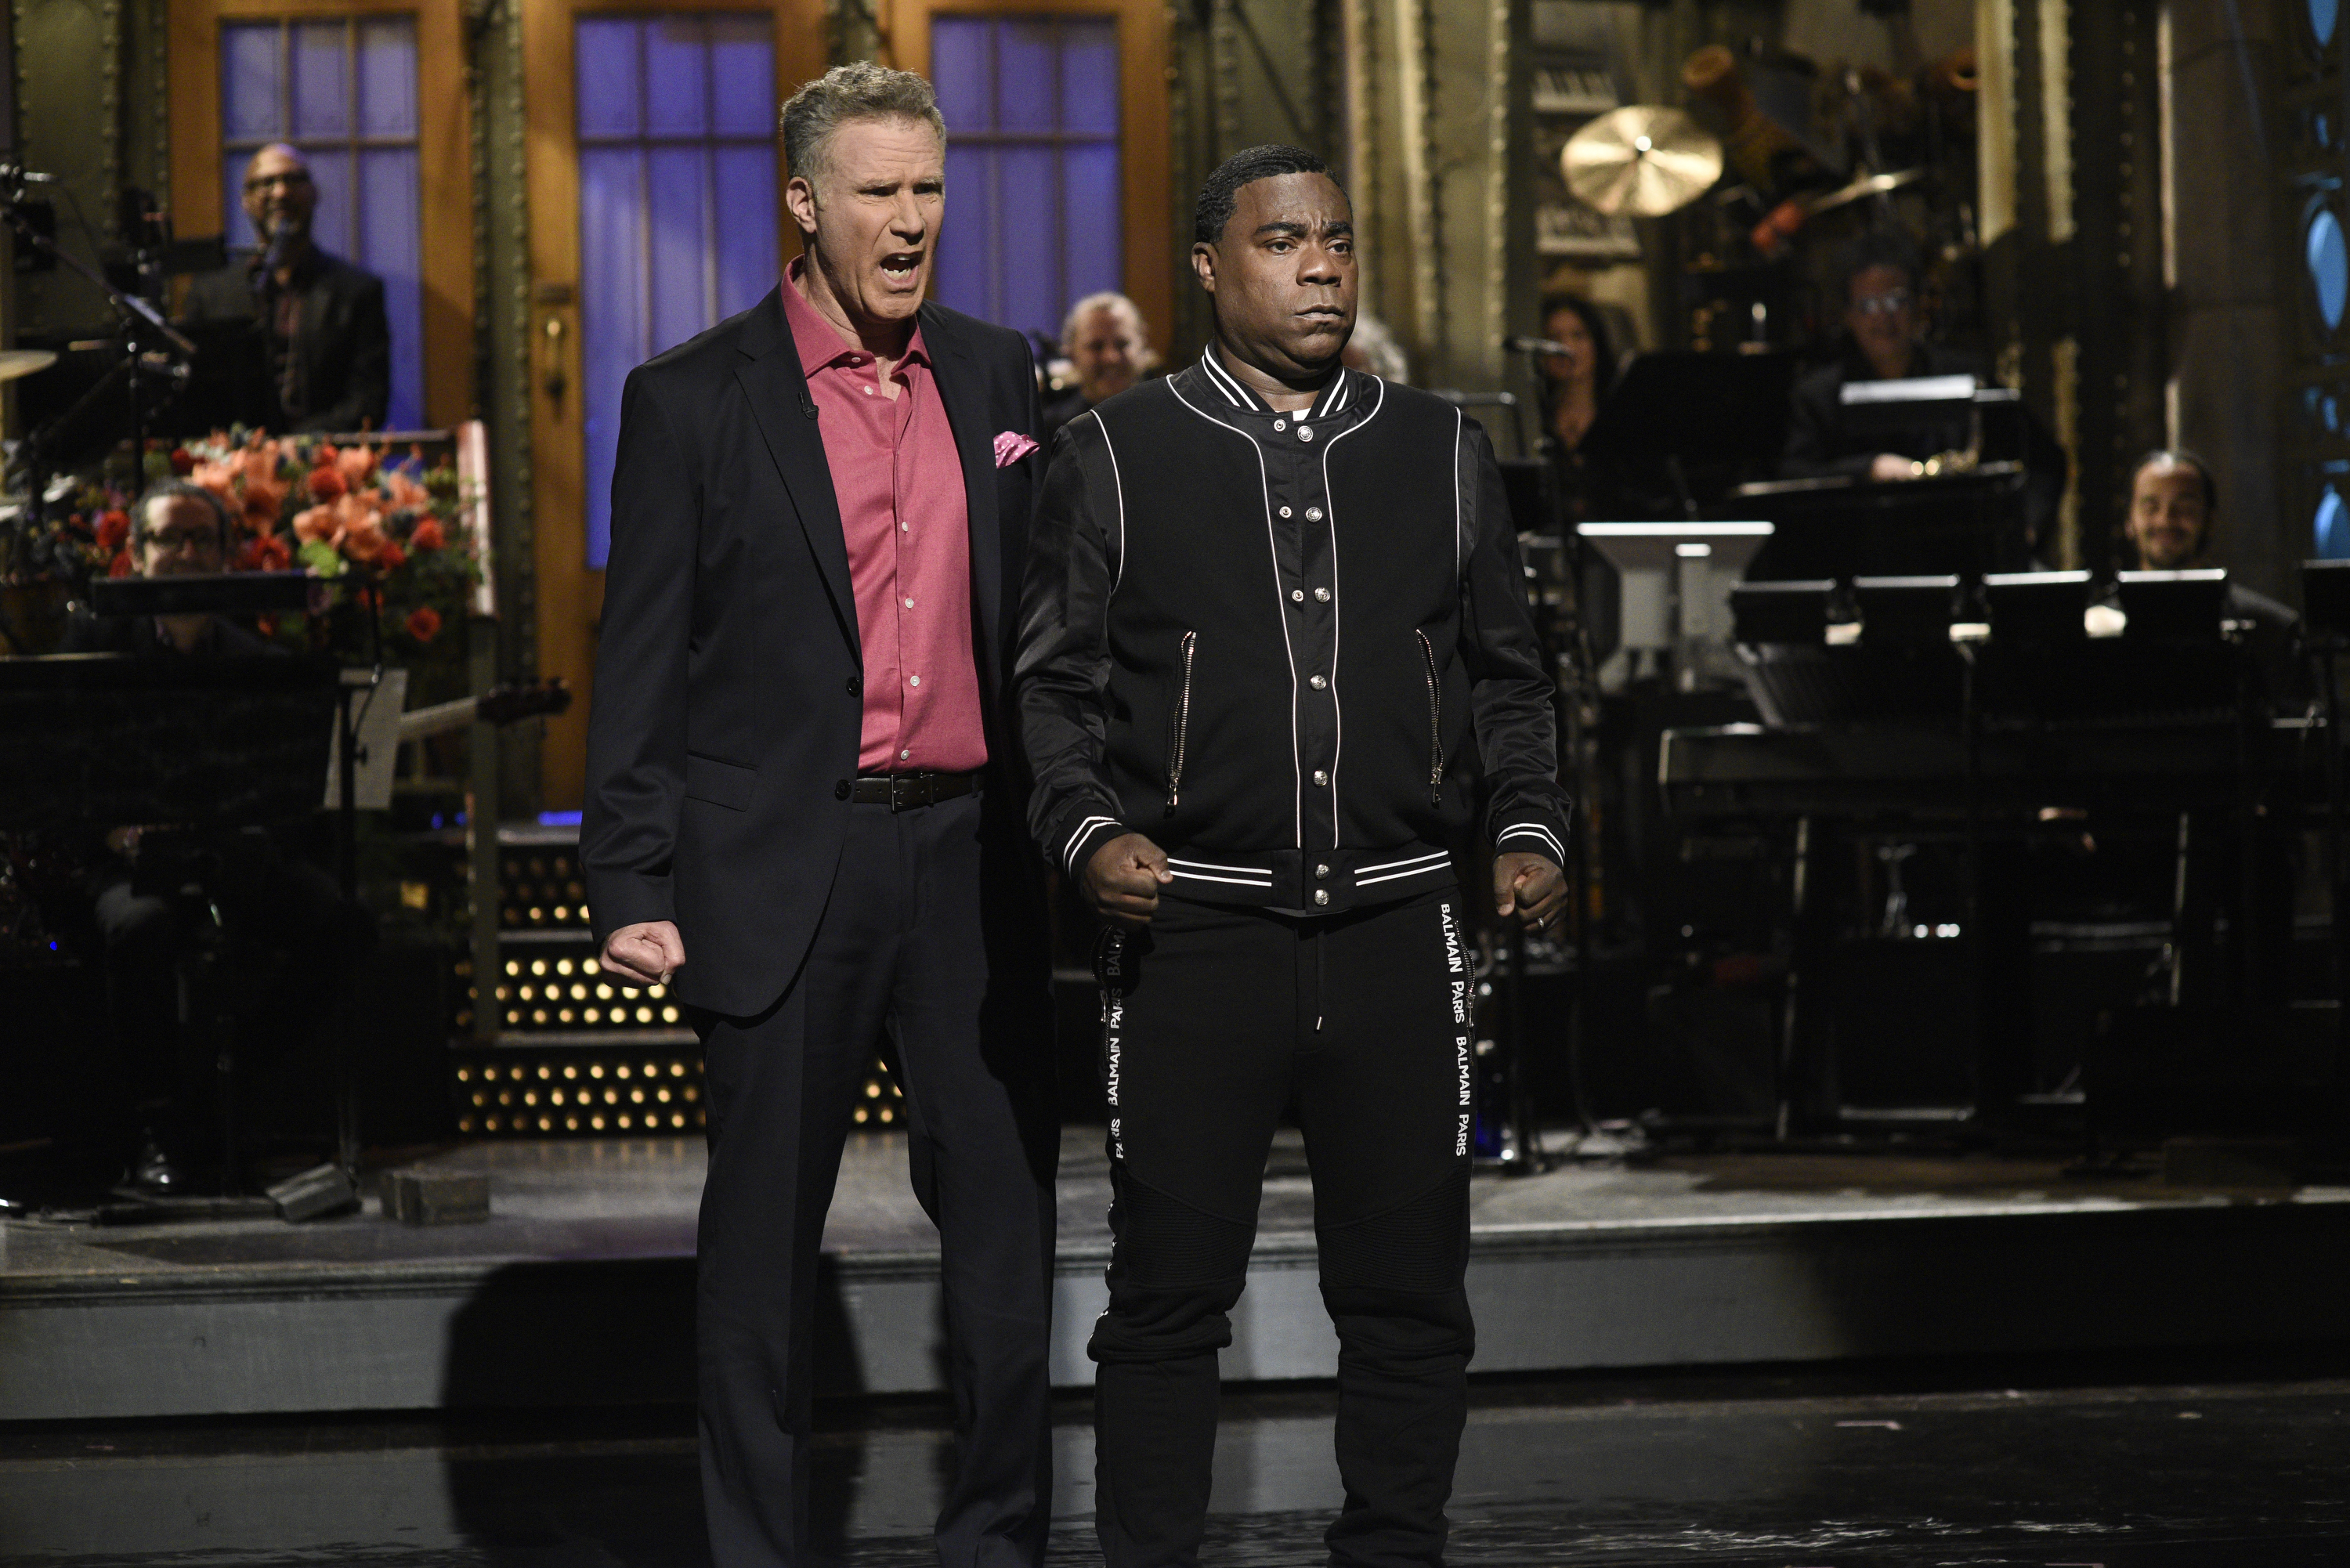 'Saturday Night Live' Review: The Prophecy Has Been Fulfilled, as Will Ferrell Hosts for the Fifth Time